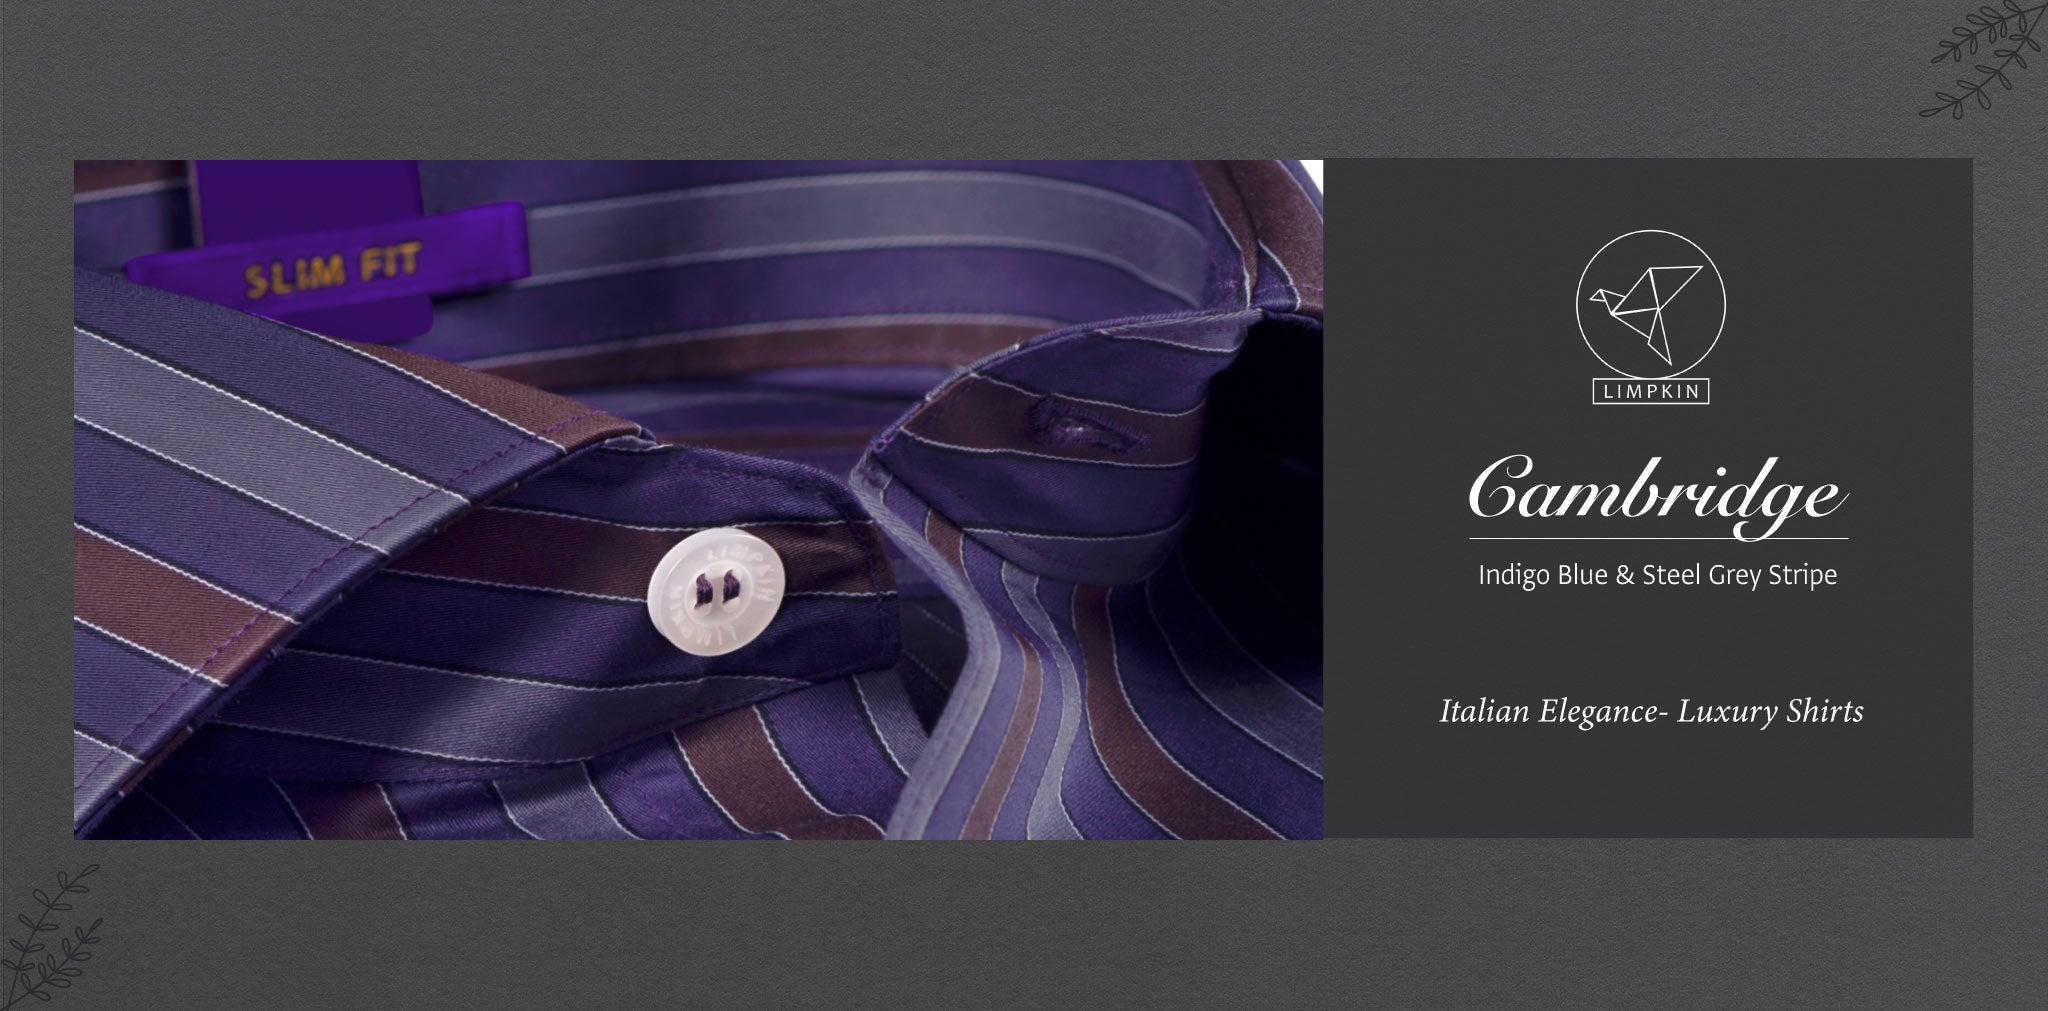 Cambridge- Indigo Blue & Steel Grey Stripe- 2 Ply Pure Egyptian Giza Cotton- Delivery from 20th Oct - Banner